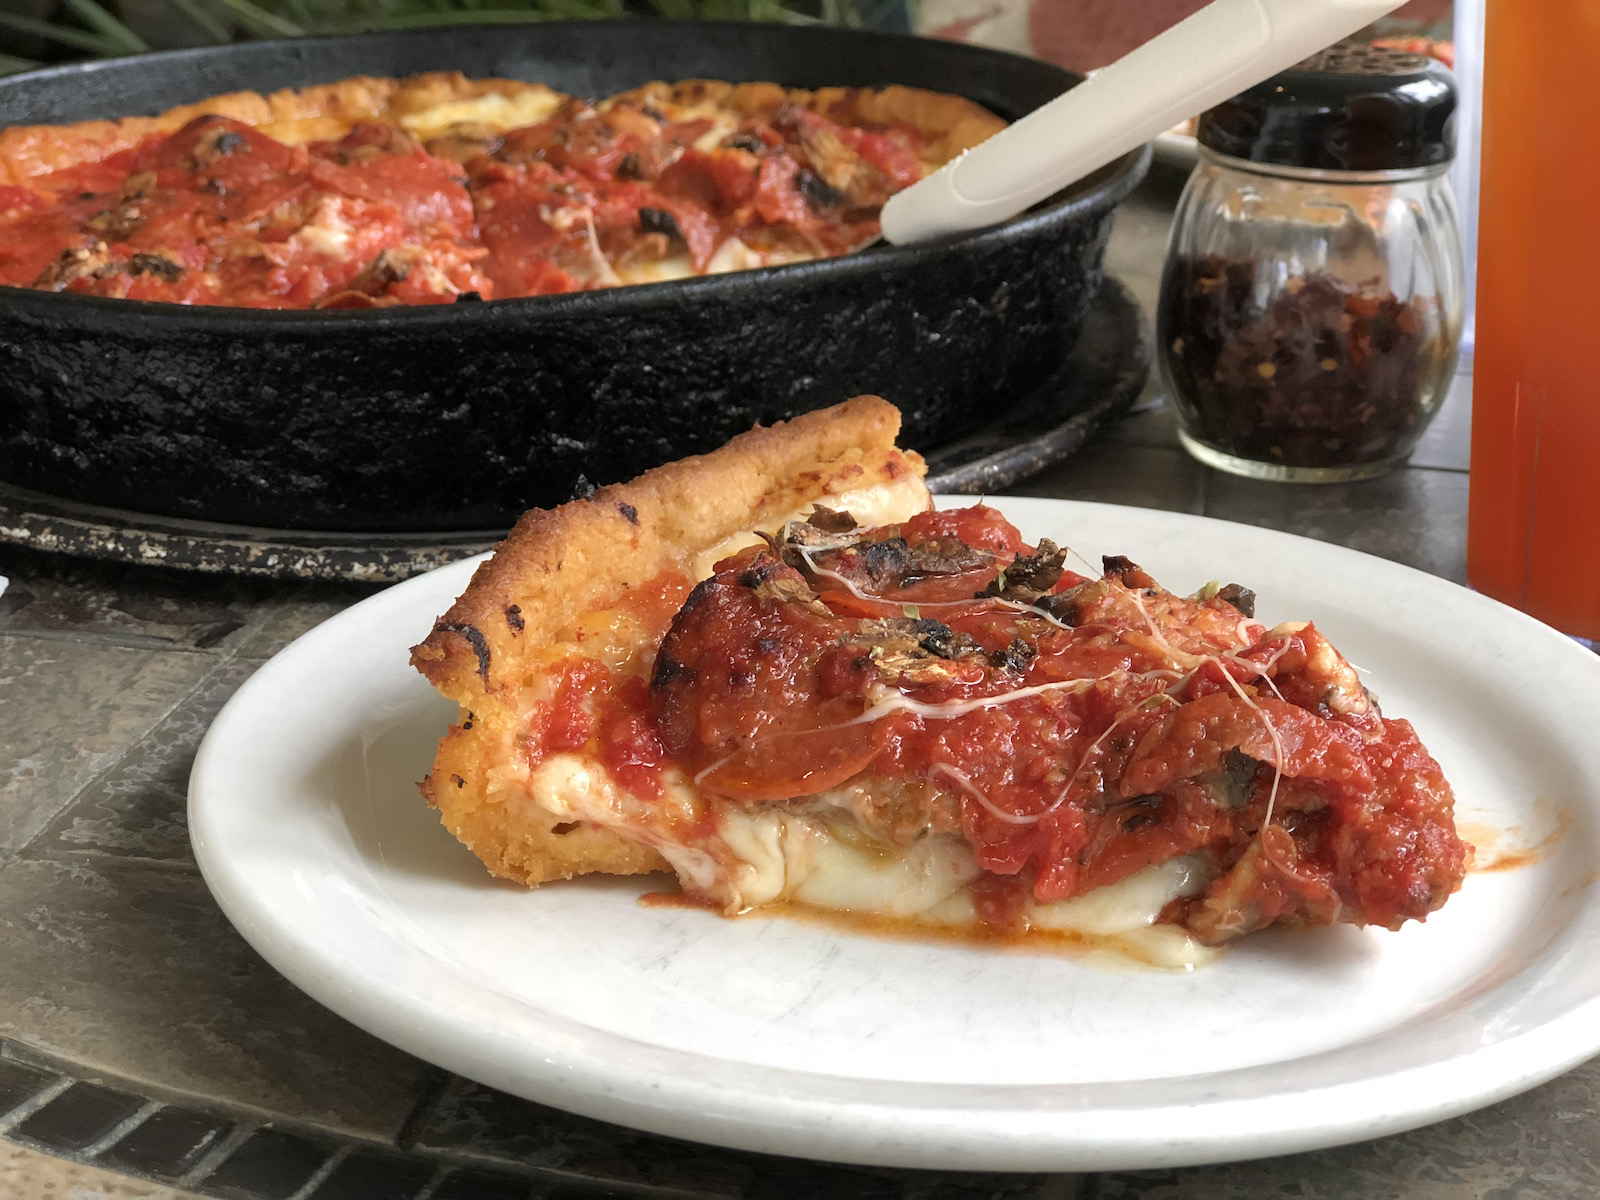 Deep dish pizza from Chuck's Place